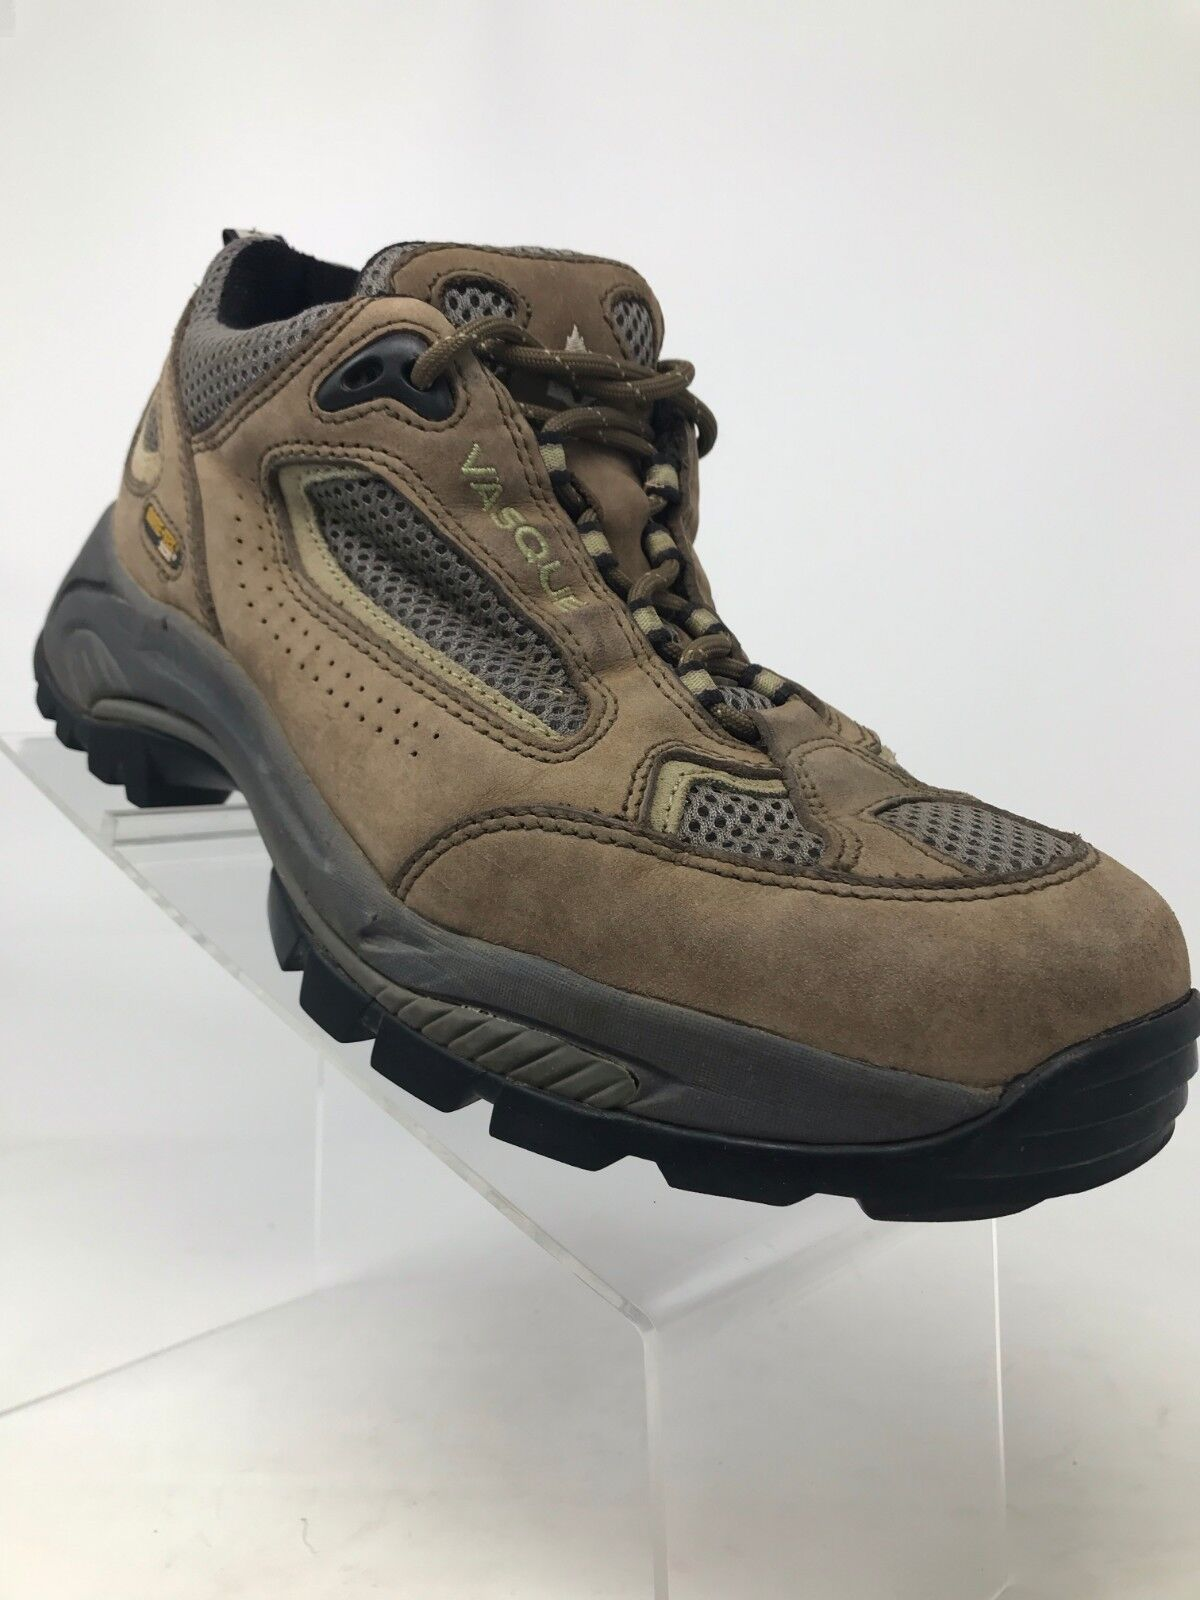 Vasque Breeze GTX XCR Brown Leather Gore-Tex Hiking Trail shoes 7459 Women10 M